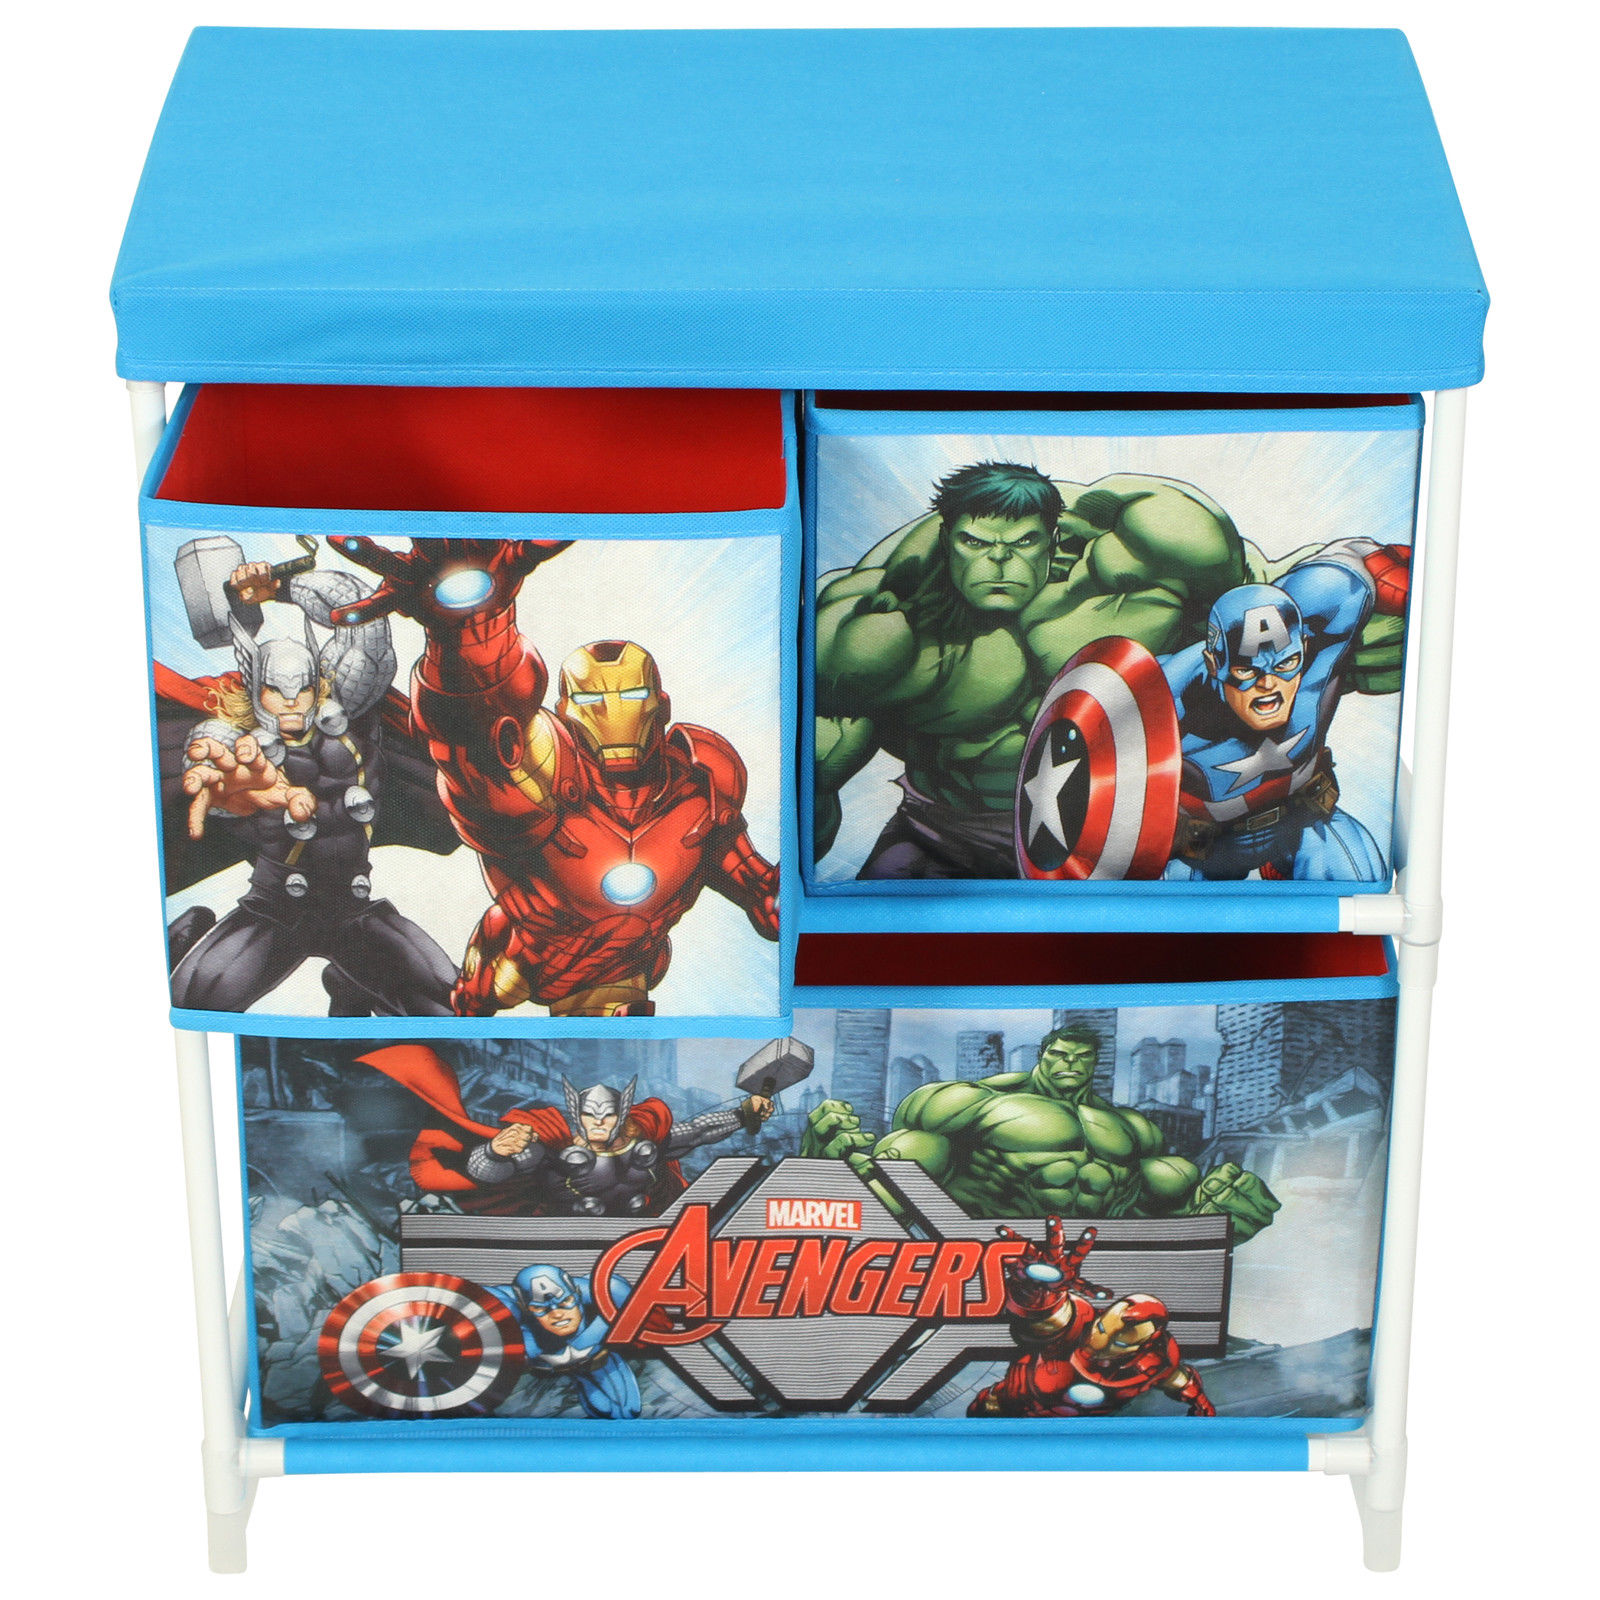 Paw Patrol Kids Toy Organizer Bin Children S Storage Box: Children's Toy Storage Box 3 Drawer Cabinet Marvel Disney